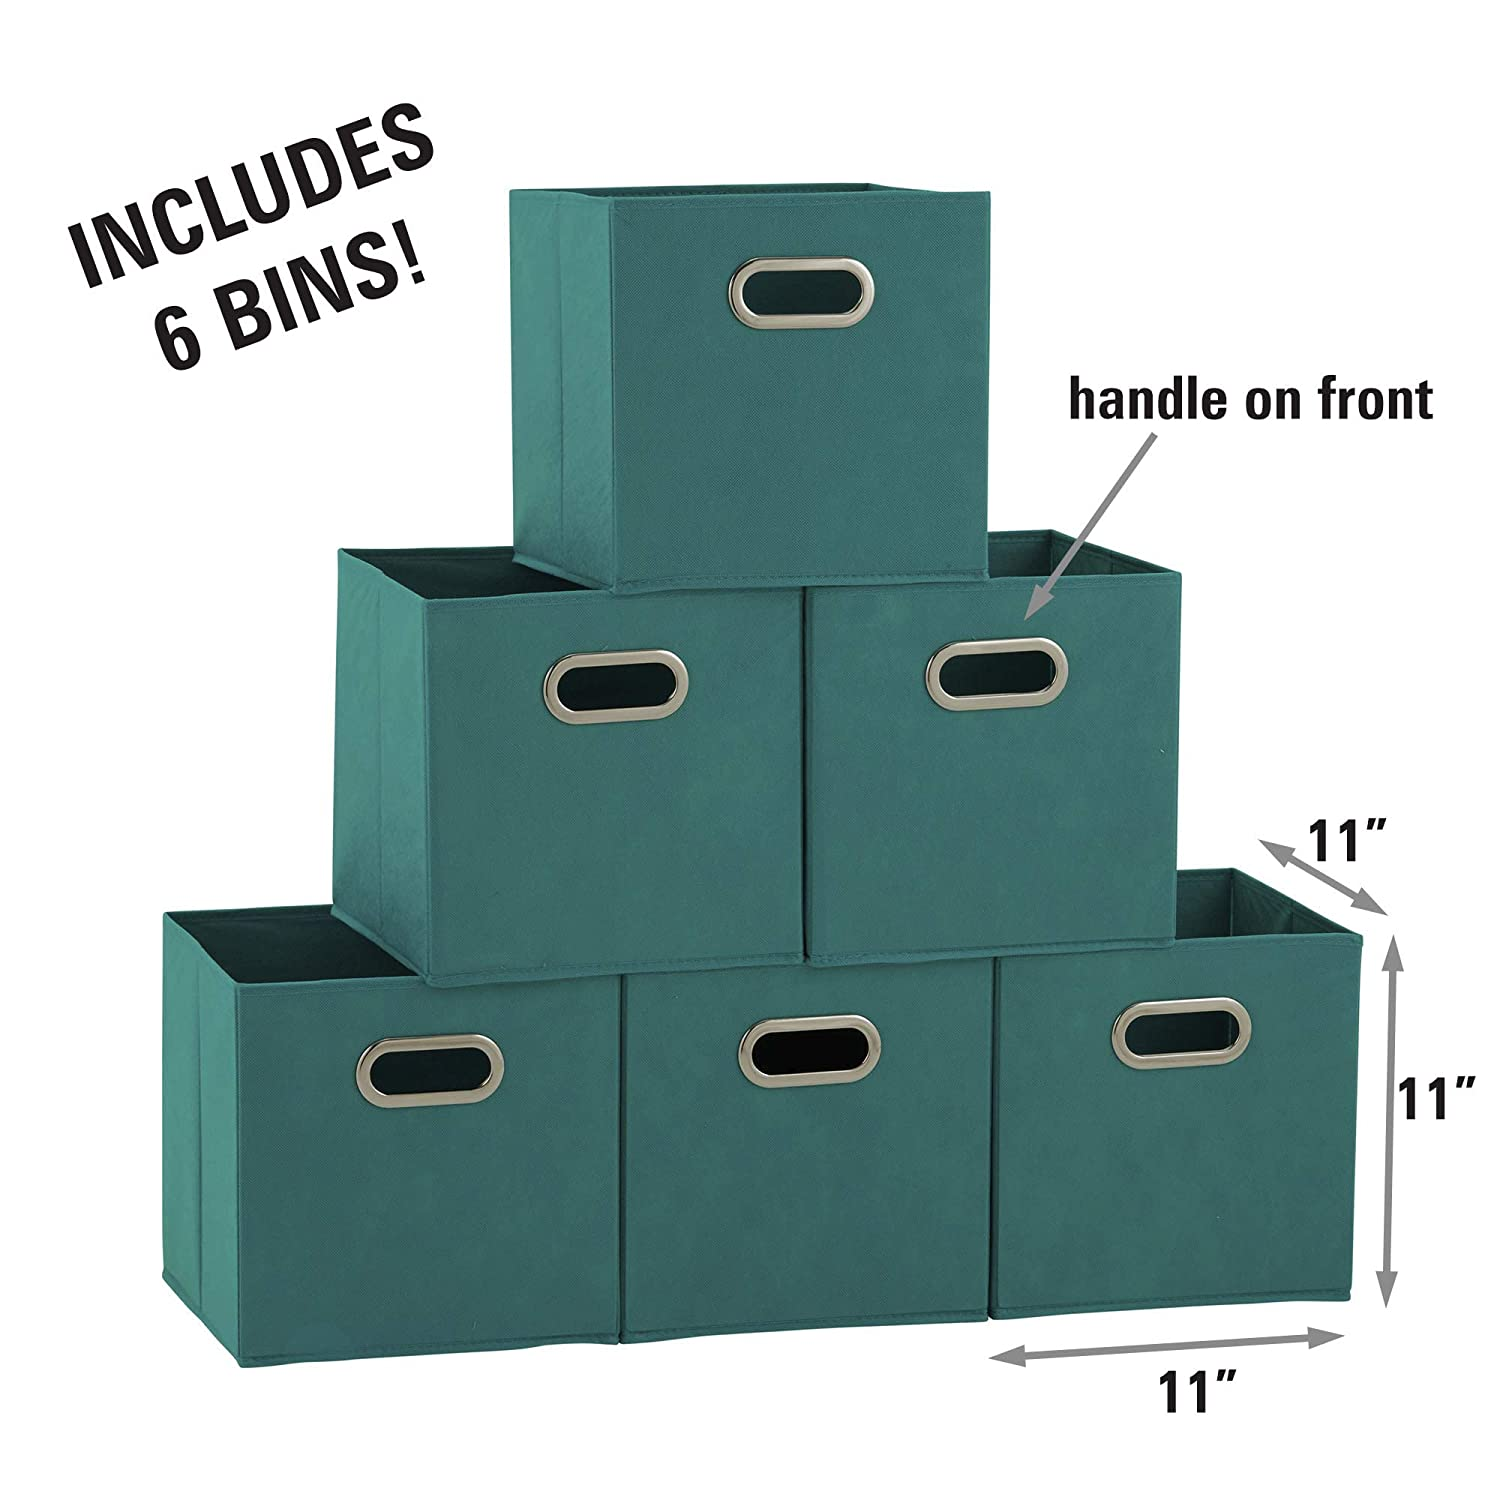 a186d76835d2 Household Essentials 83-1 Foldable Fabric Storage Bins | Set of 6 Cubby  Cubes with Handles | Aqua, 6 lbs,